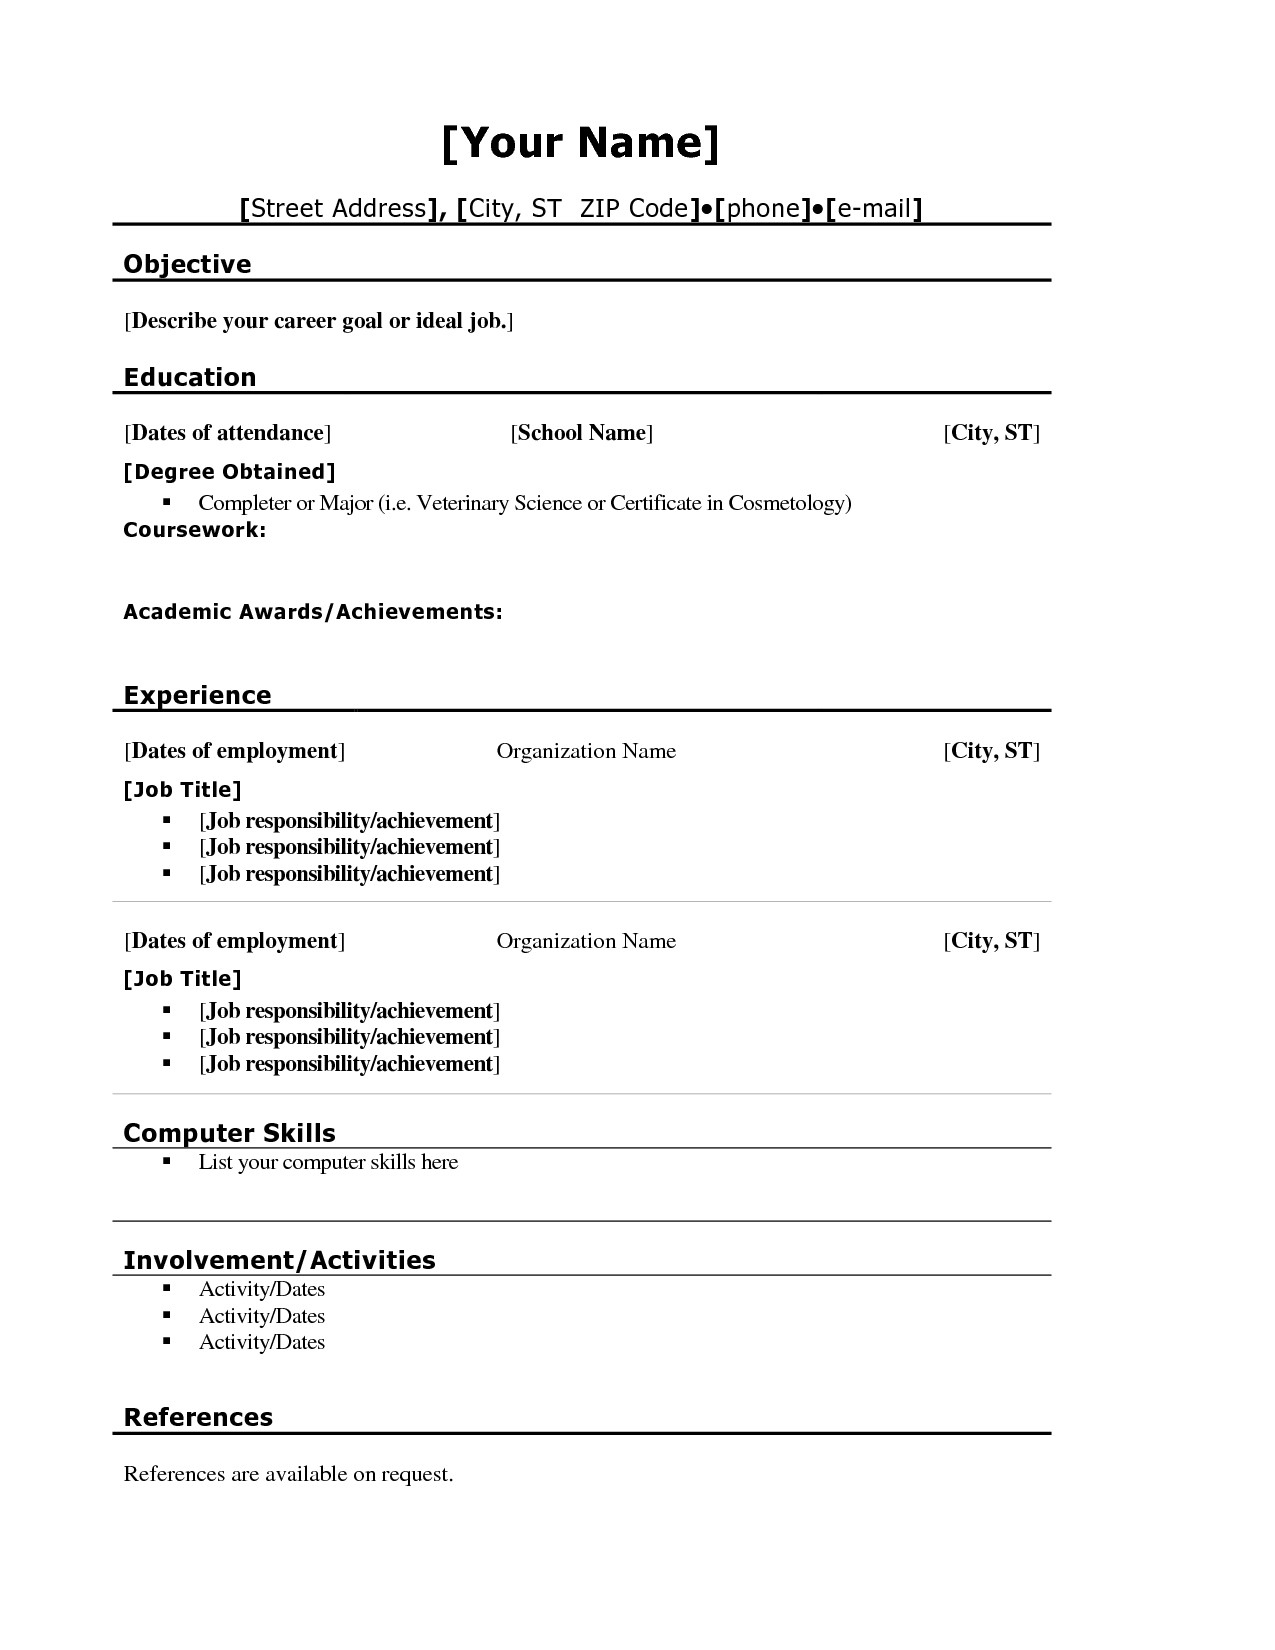 Resume Template for First Job Pin by Jobresume On Resume Career Termplate Free